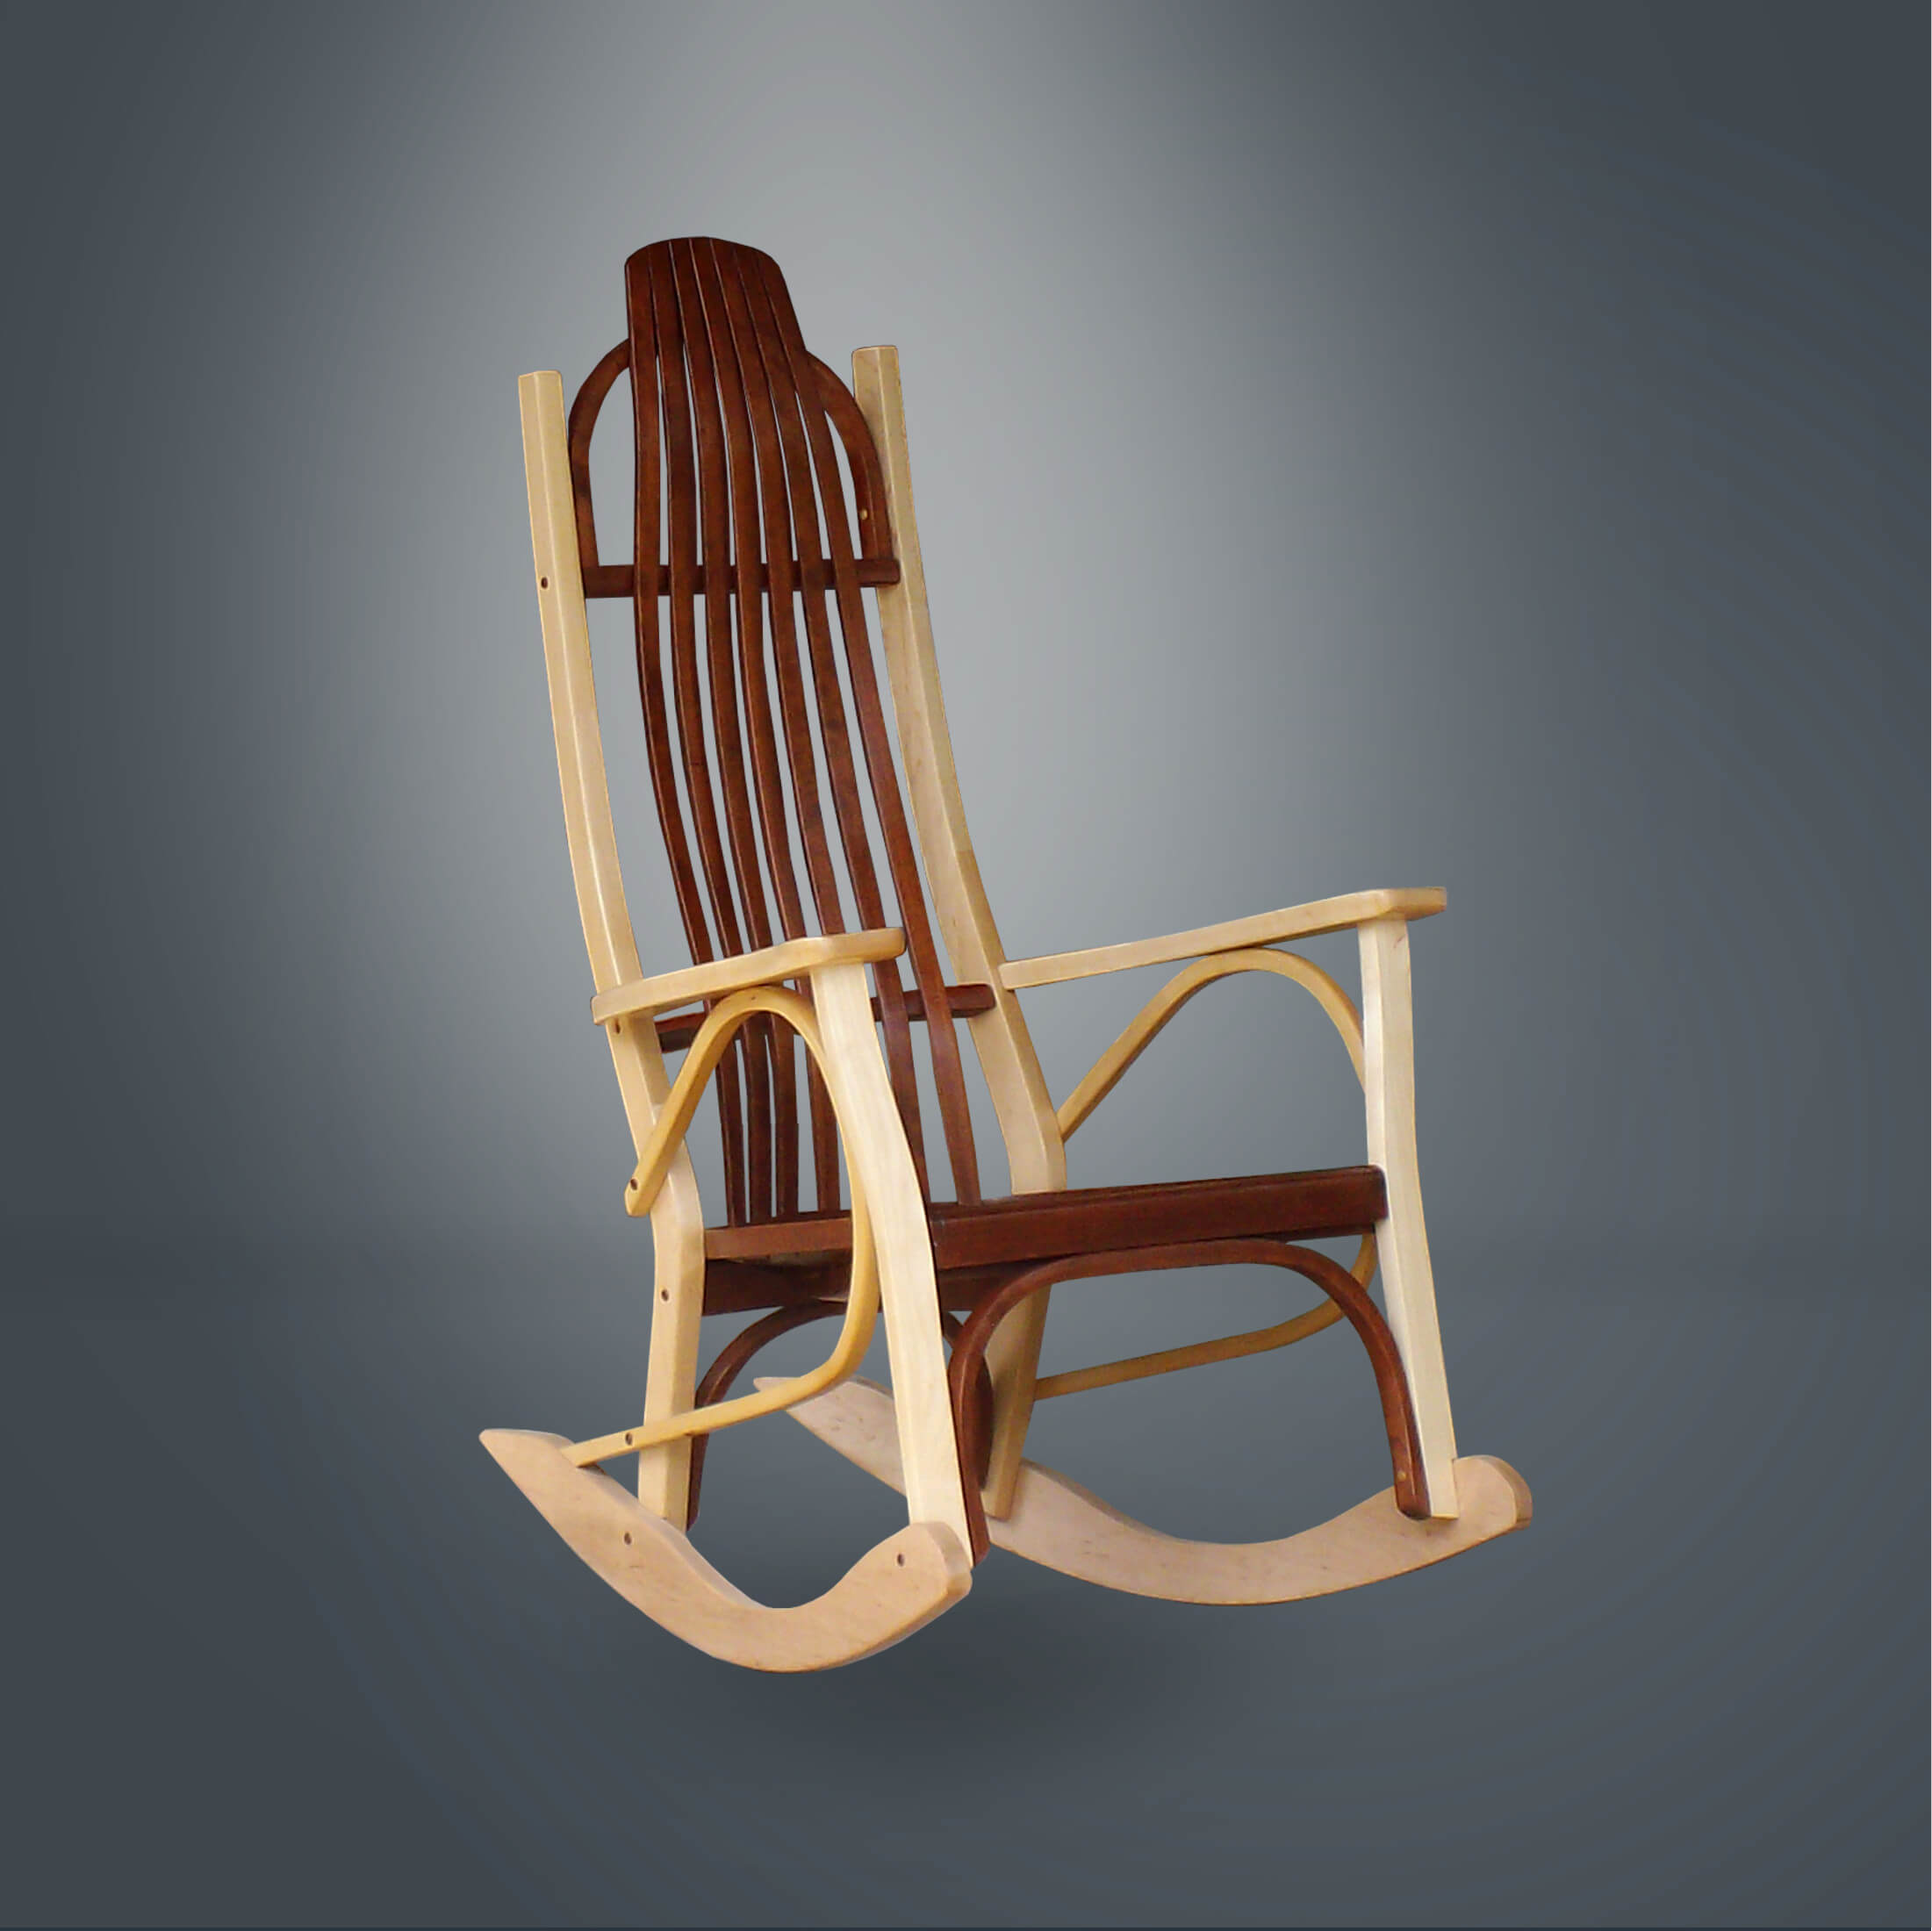 IP Designs Ryan Miller contemporary-rocker